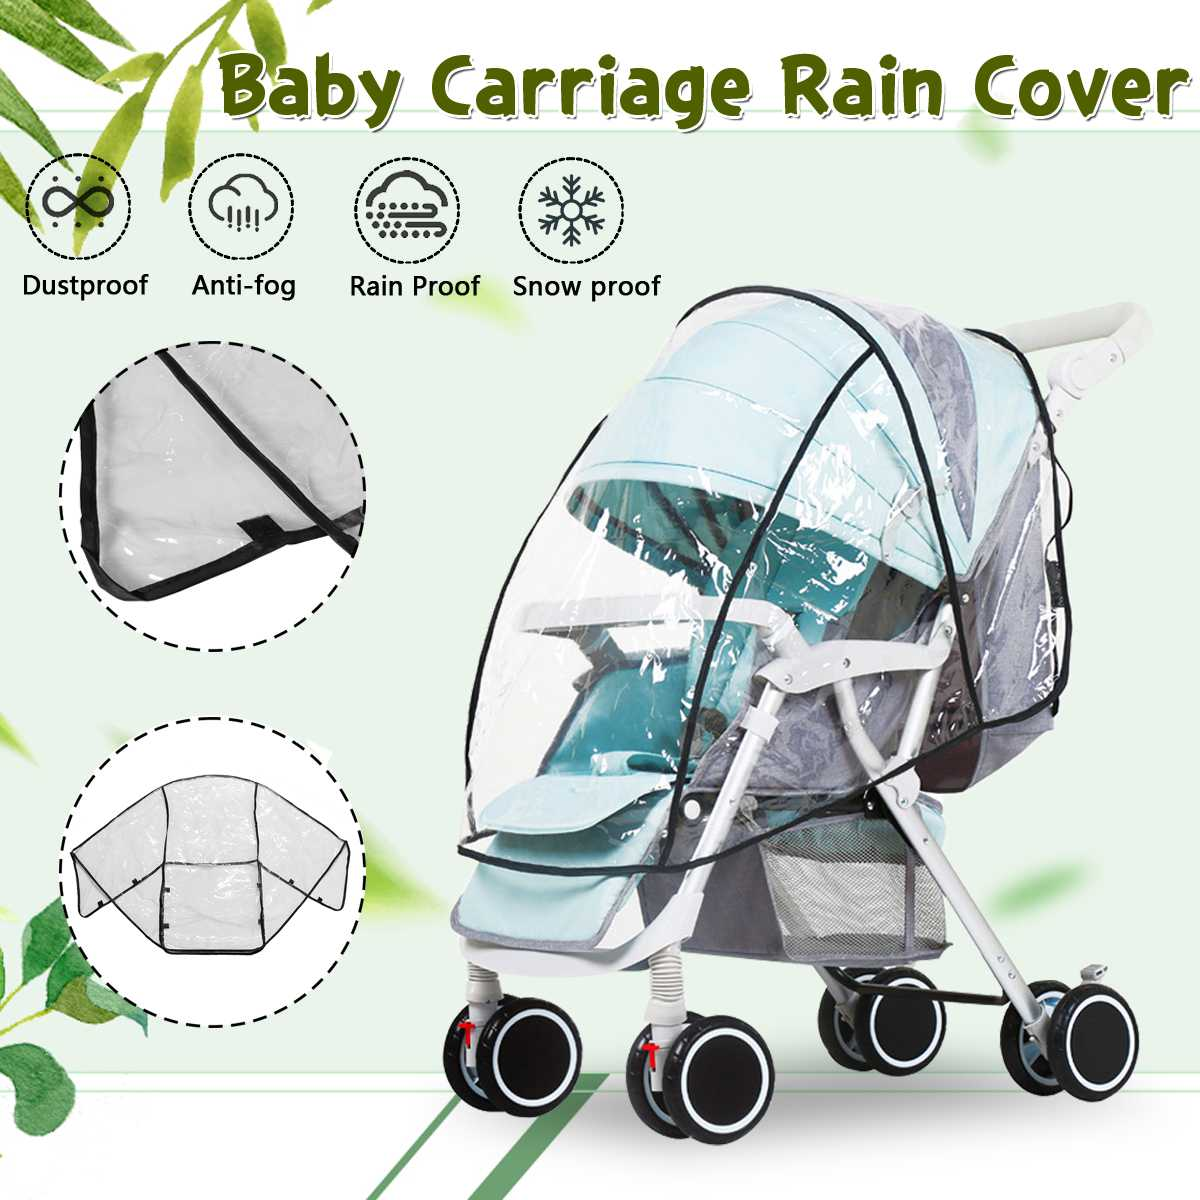 Waterproof Raincover For Stroller Prams Cart Dust Raincoat Rain Cover For Baby Stroller Pushchairs Accessories Baby Carriages S